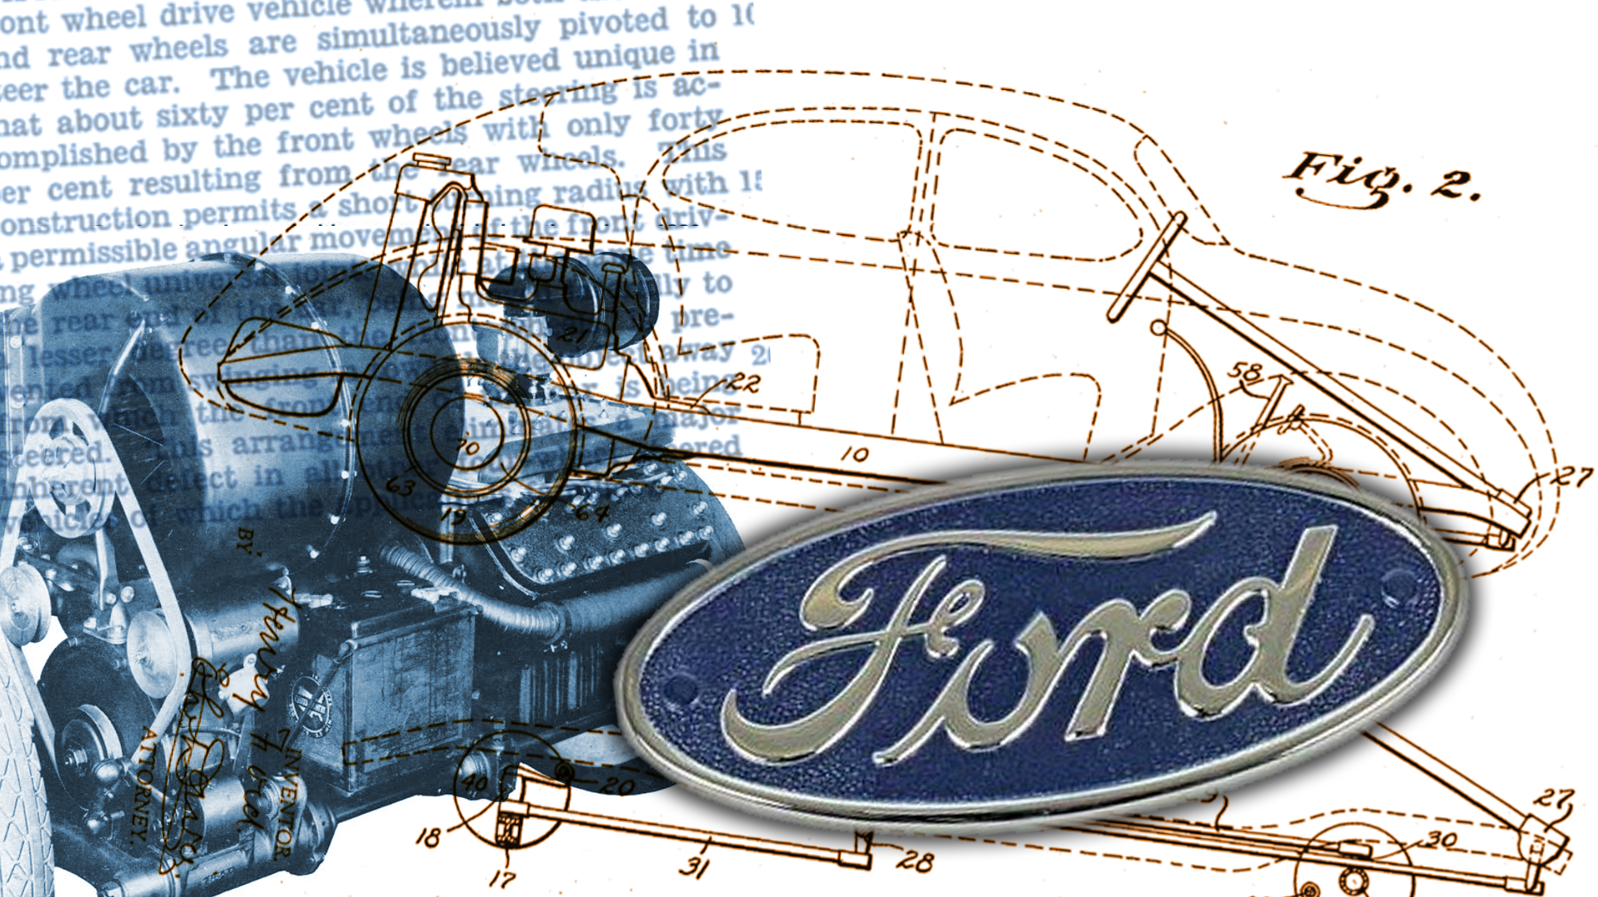 Ford Once Took A Patent On A Car With The Craziest And Least-Used Car Layout Ever